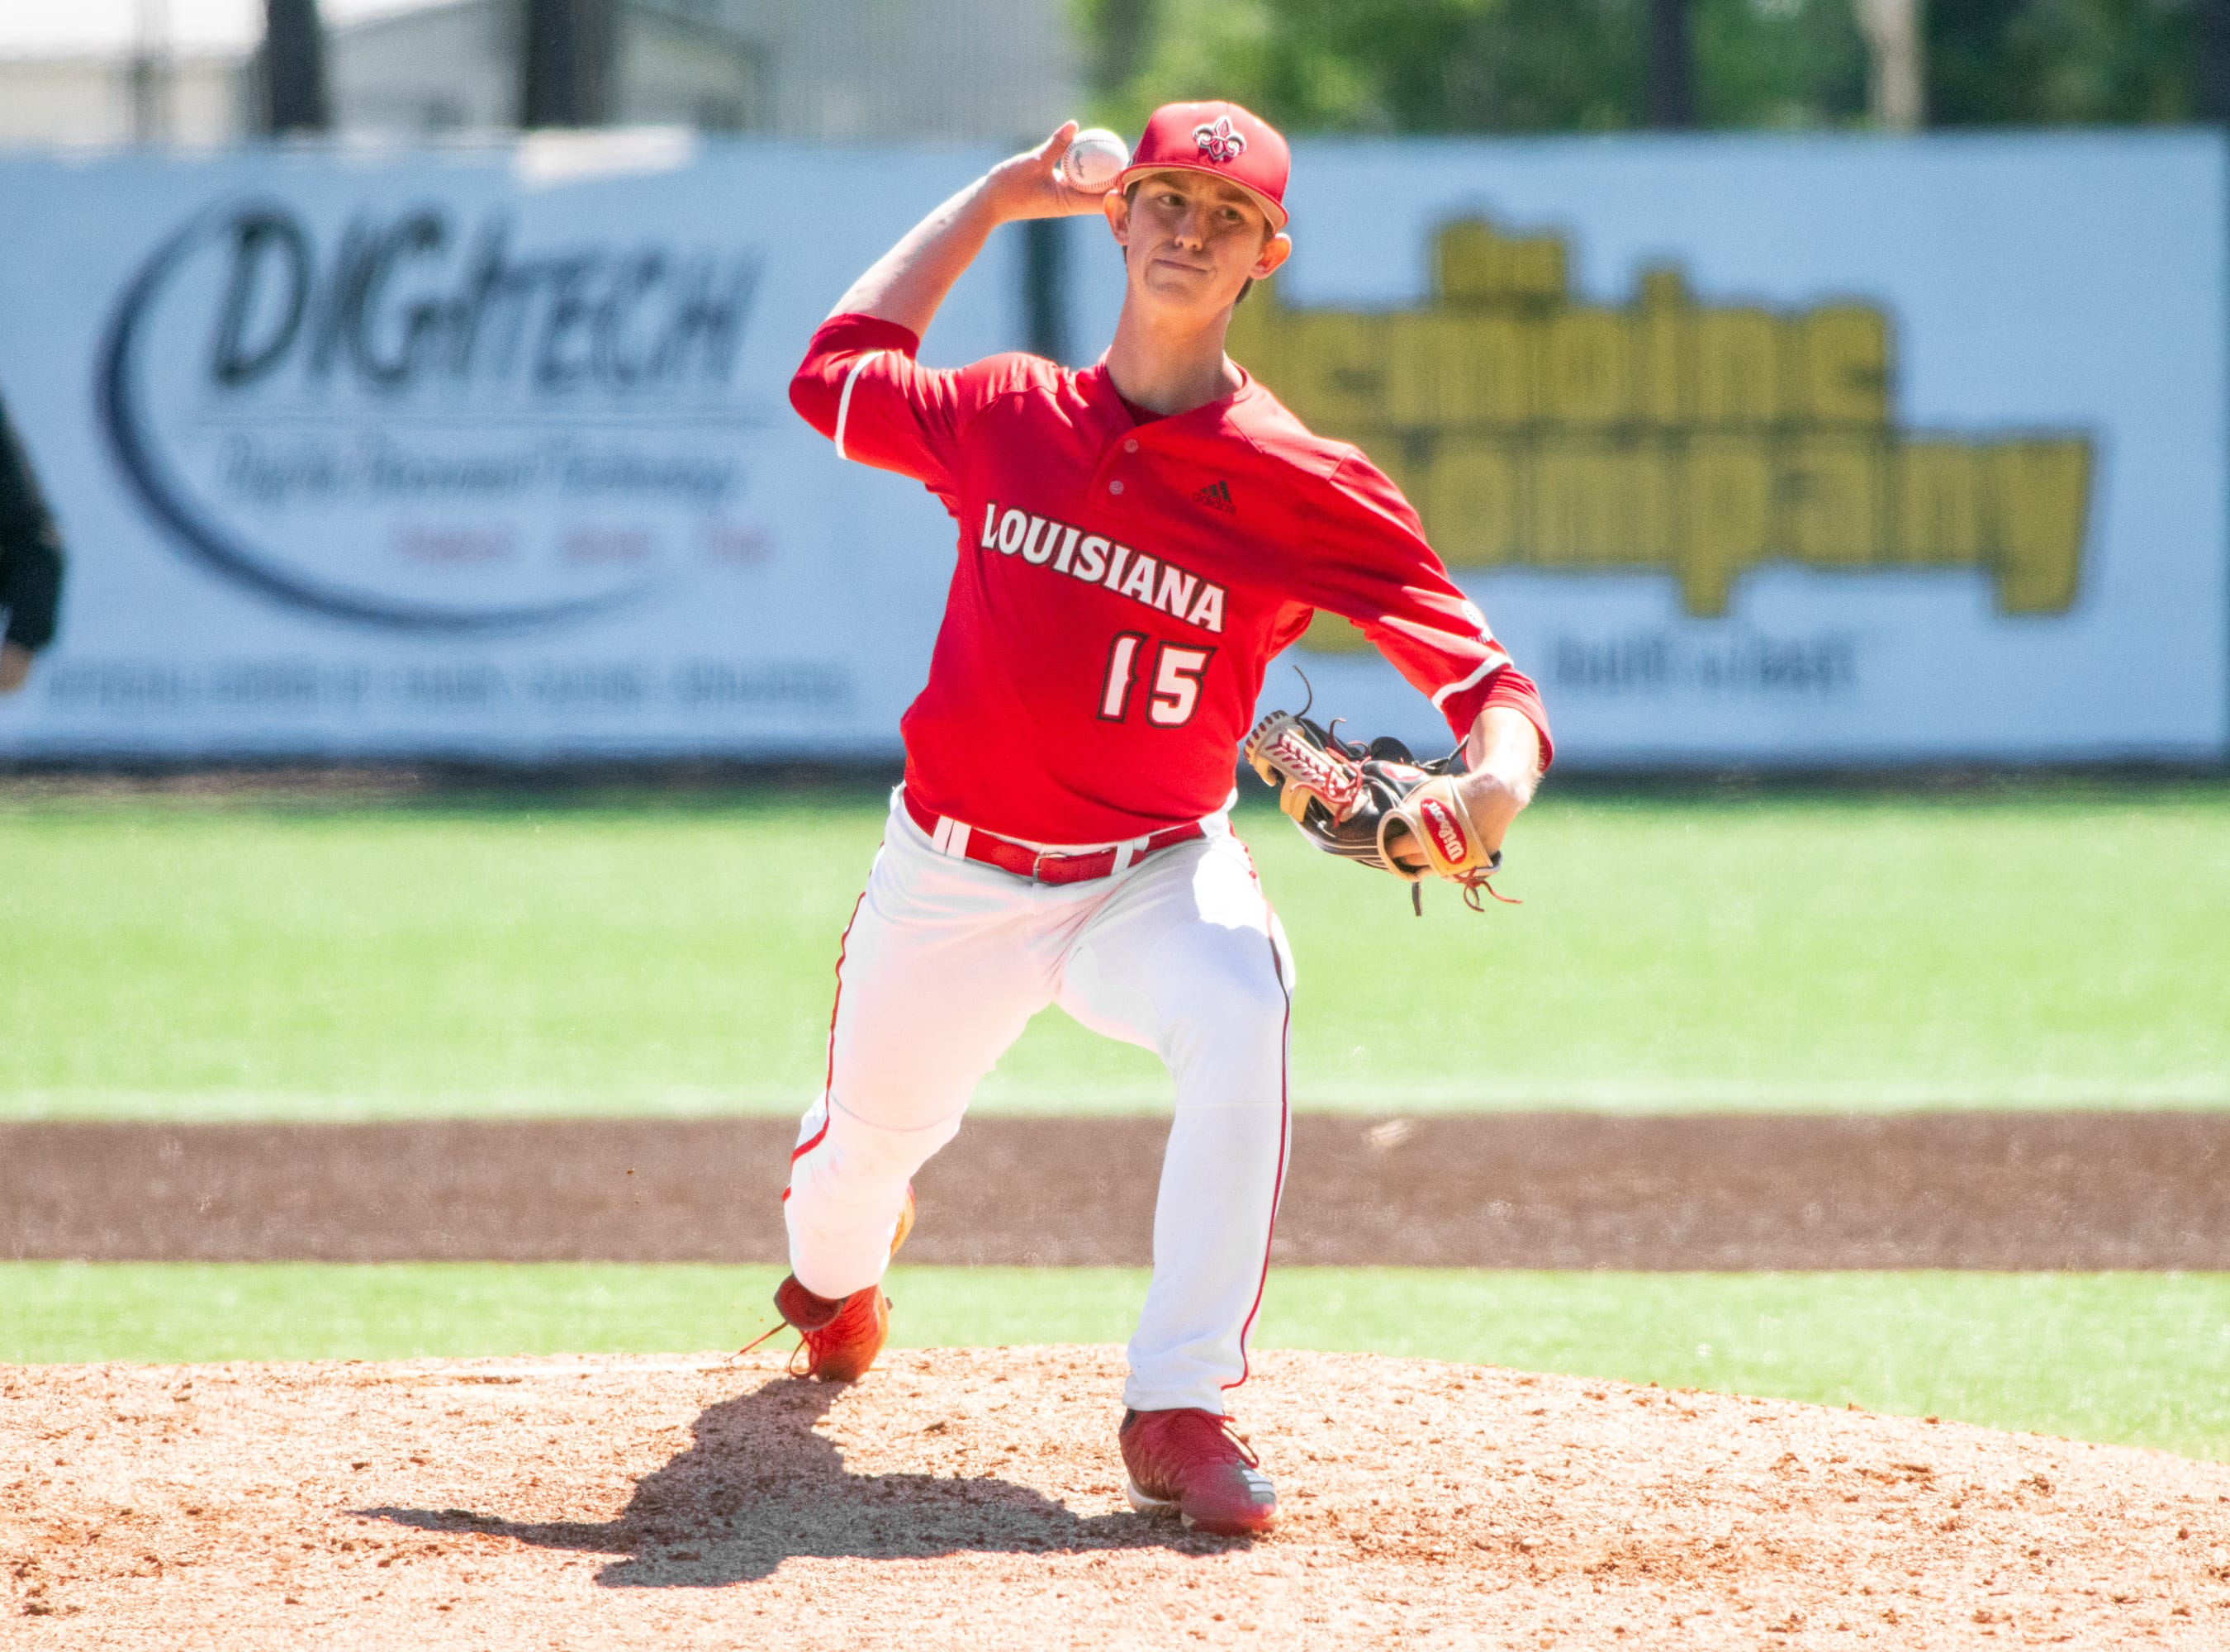 """UL's pitcher Jacob Schultz throws to the batter as the Ragin' Cajuns take on the South Alabama Jaguars at M.L. """"Tigue"""" Moore Field on Sunday, April 14, 2019."""